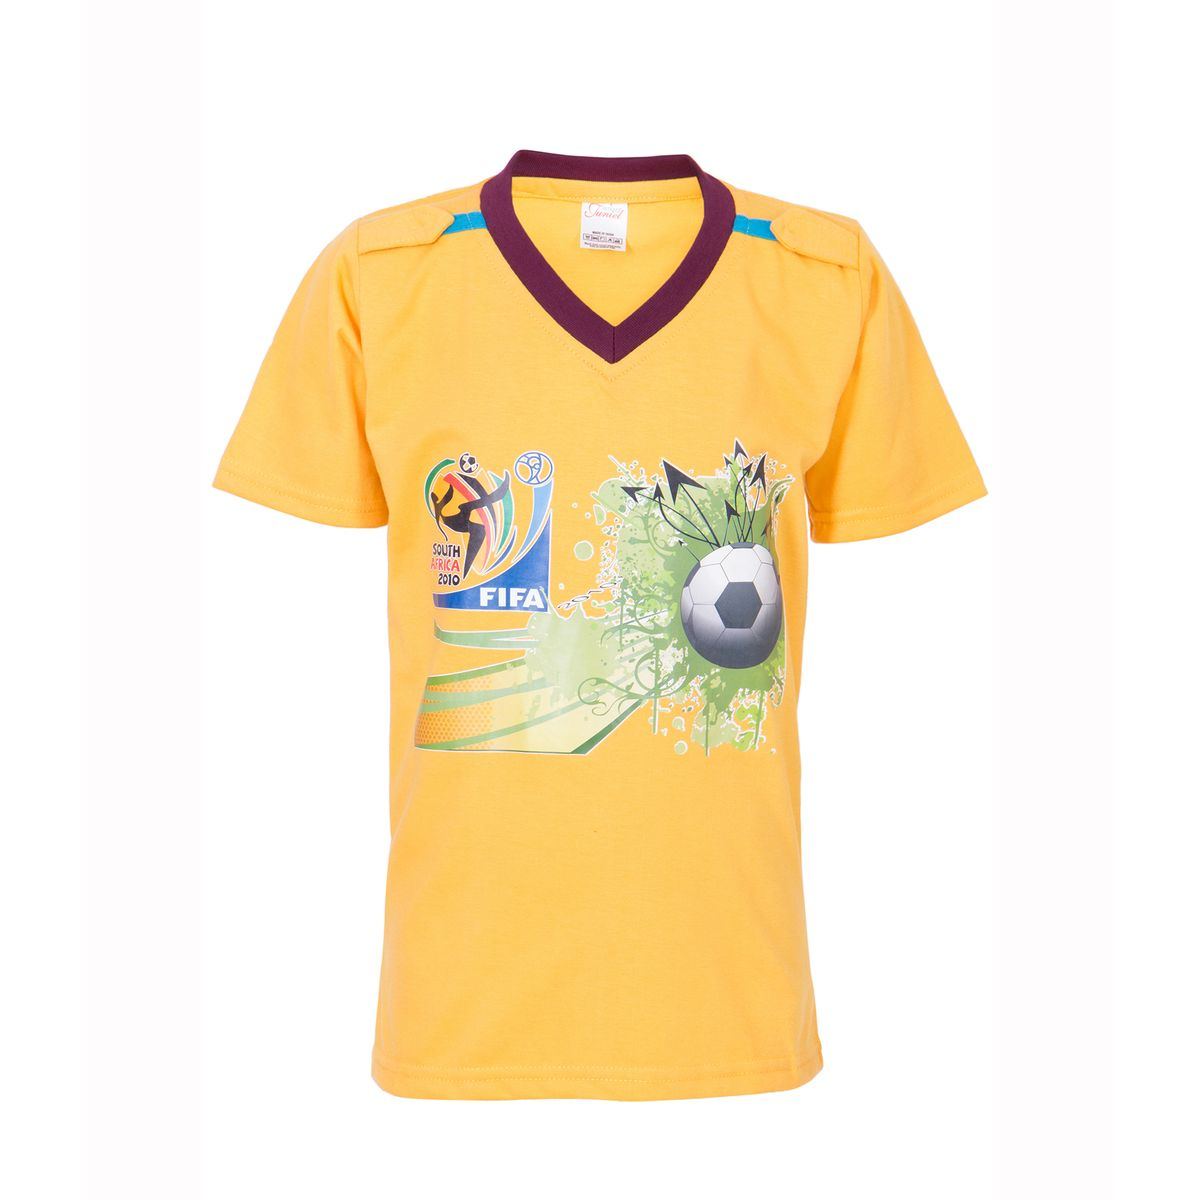 Ultrafit Junior Boys Cotton Multicolored T-Shirt- Pack of 3198